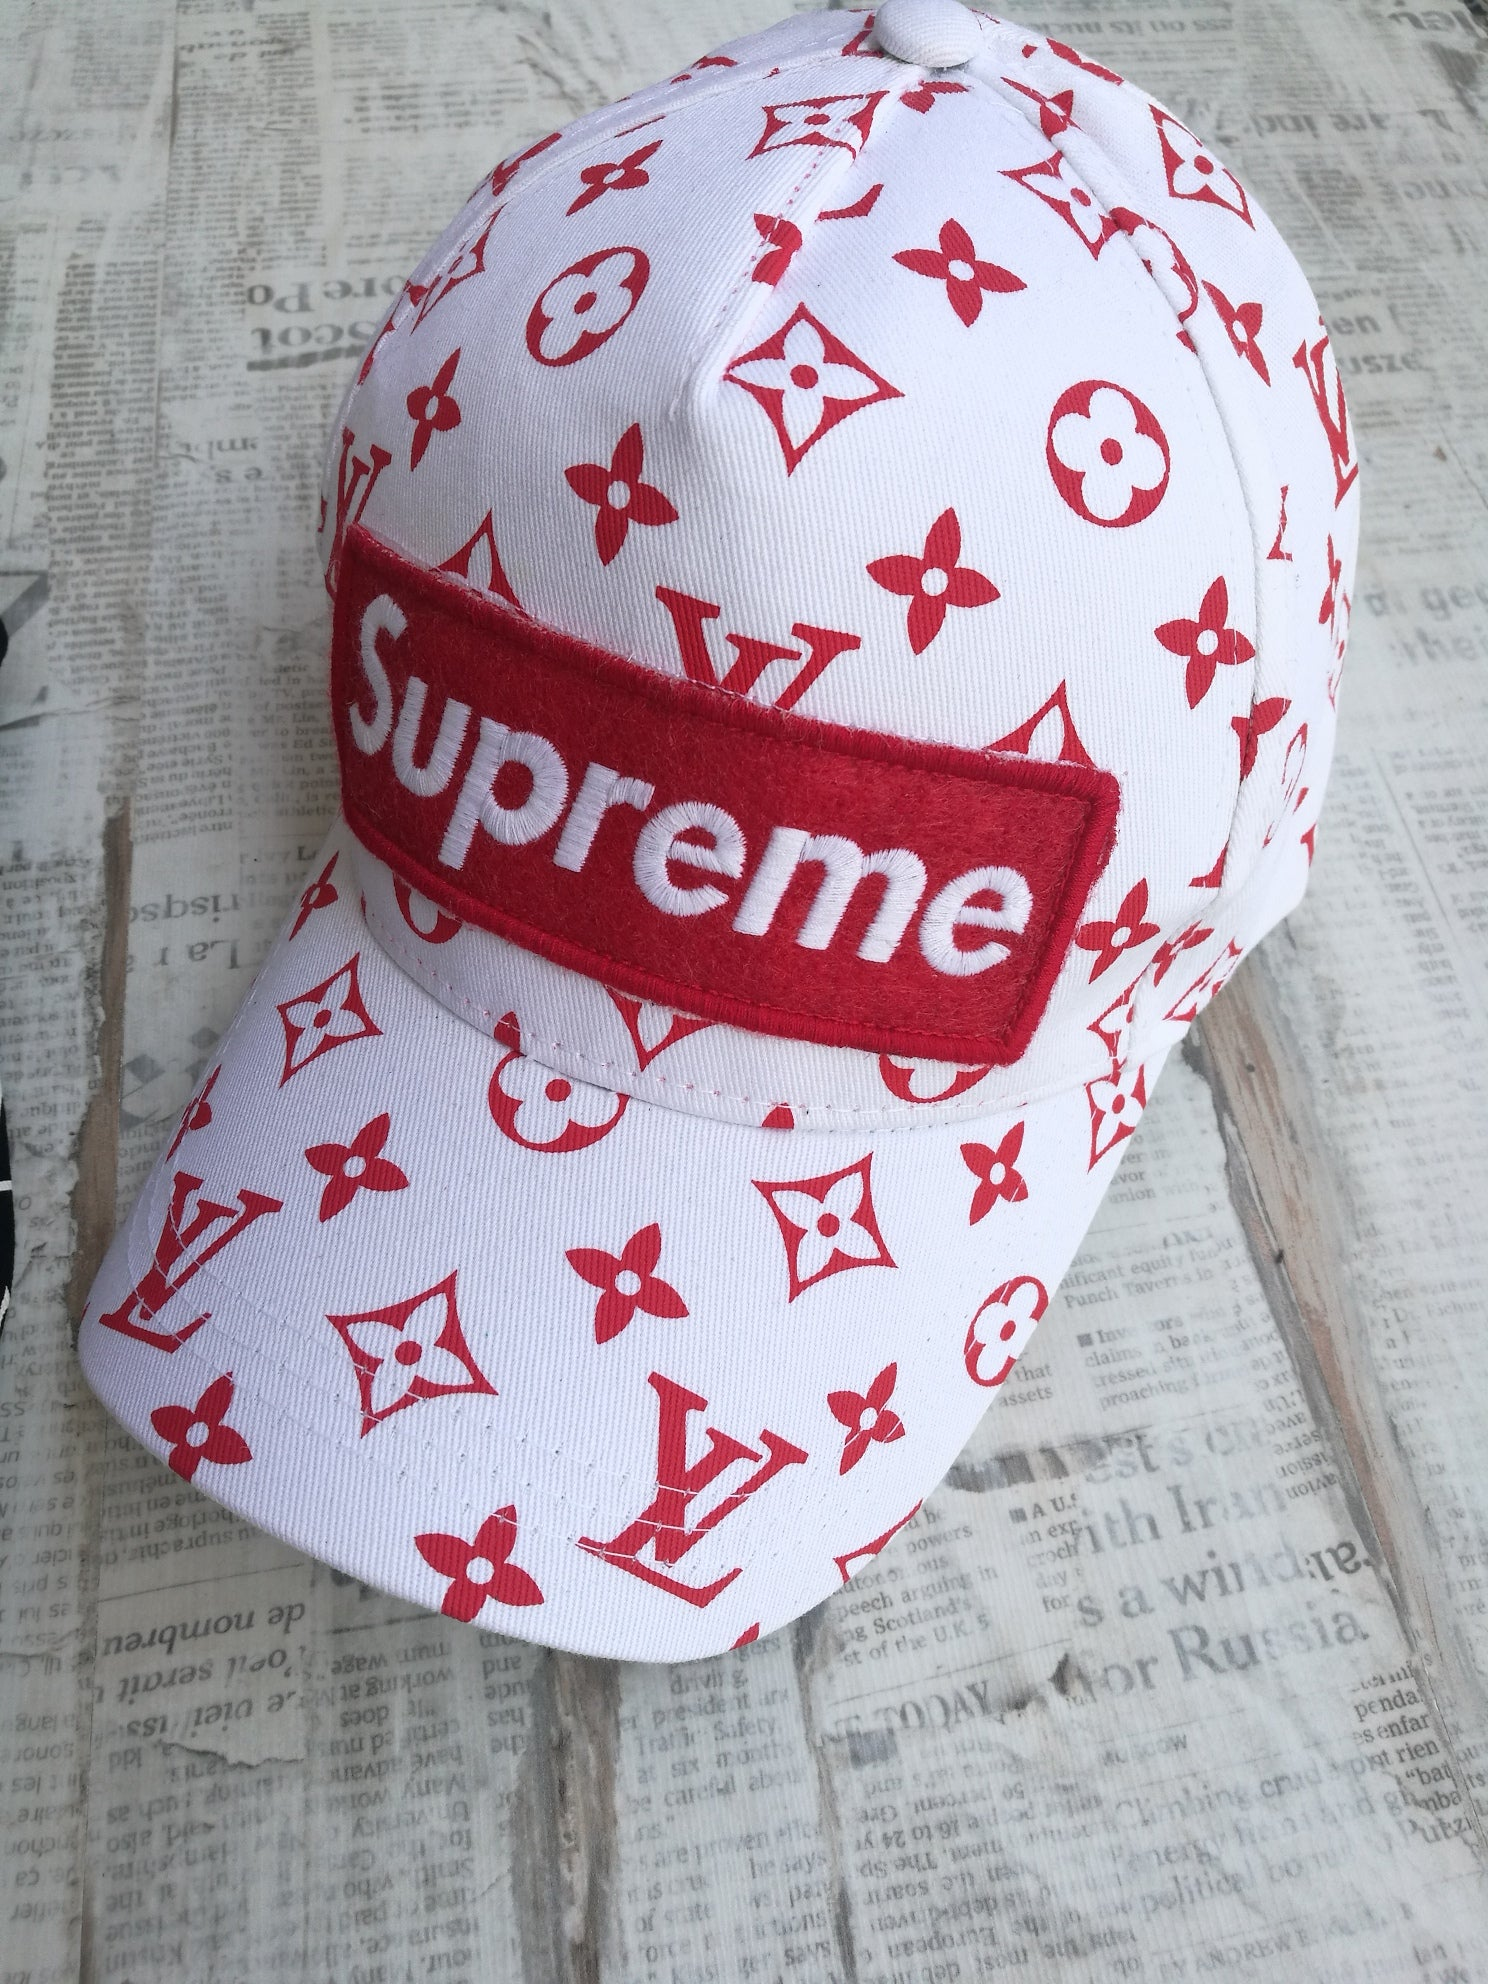 Louis Vuitton Supreme Baseball Cap Hats